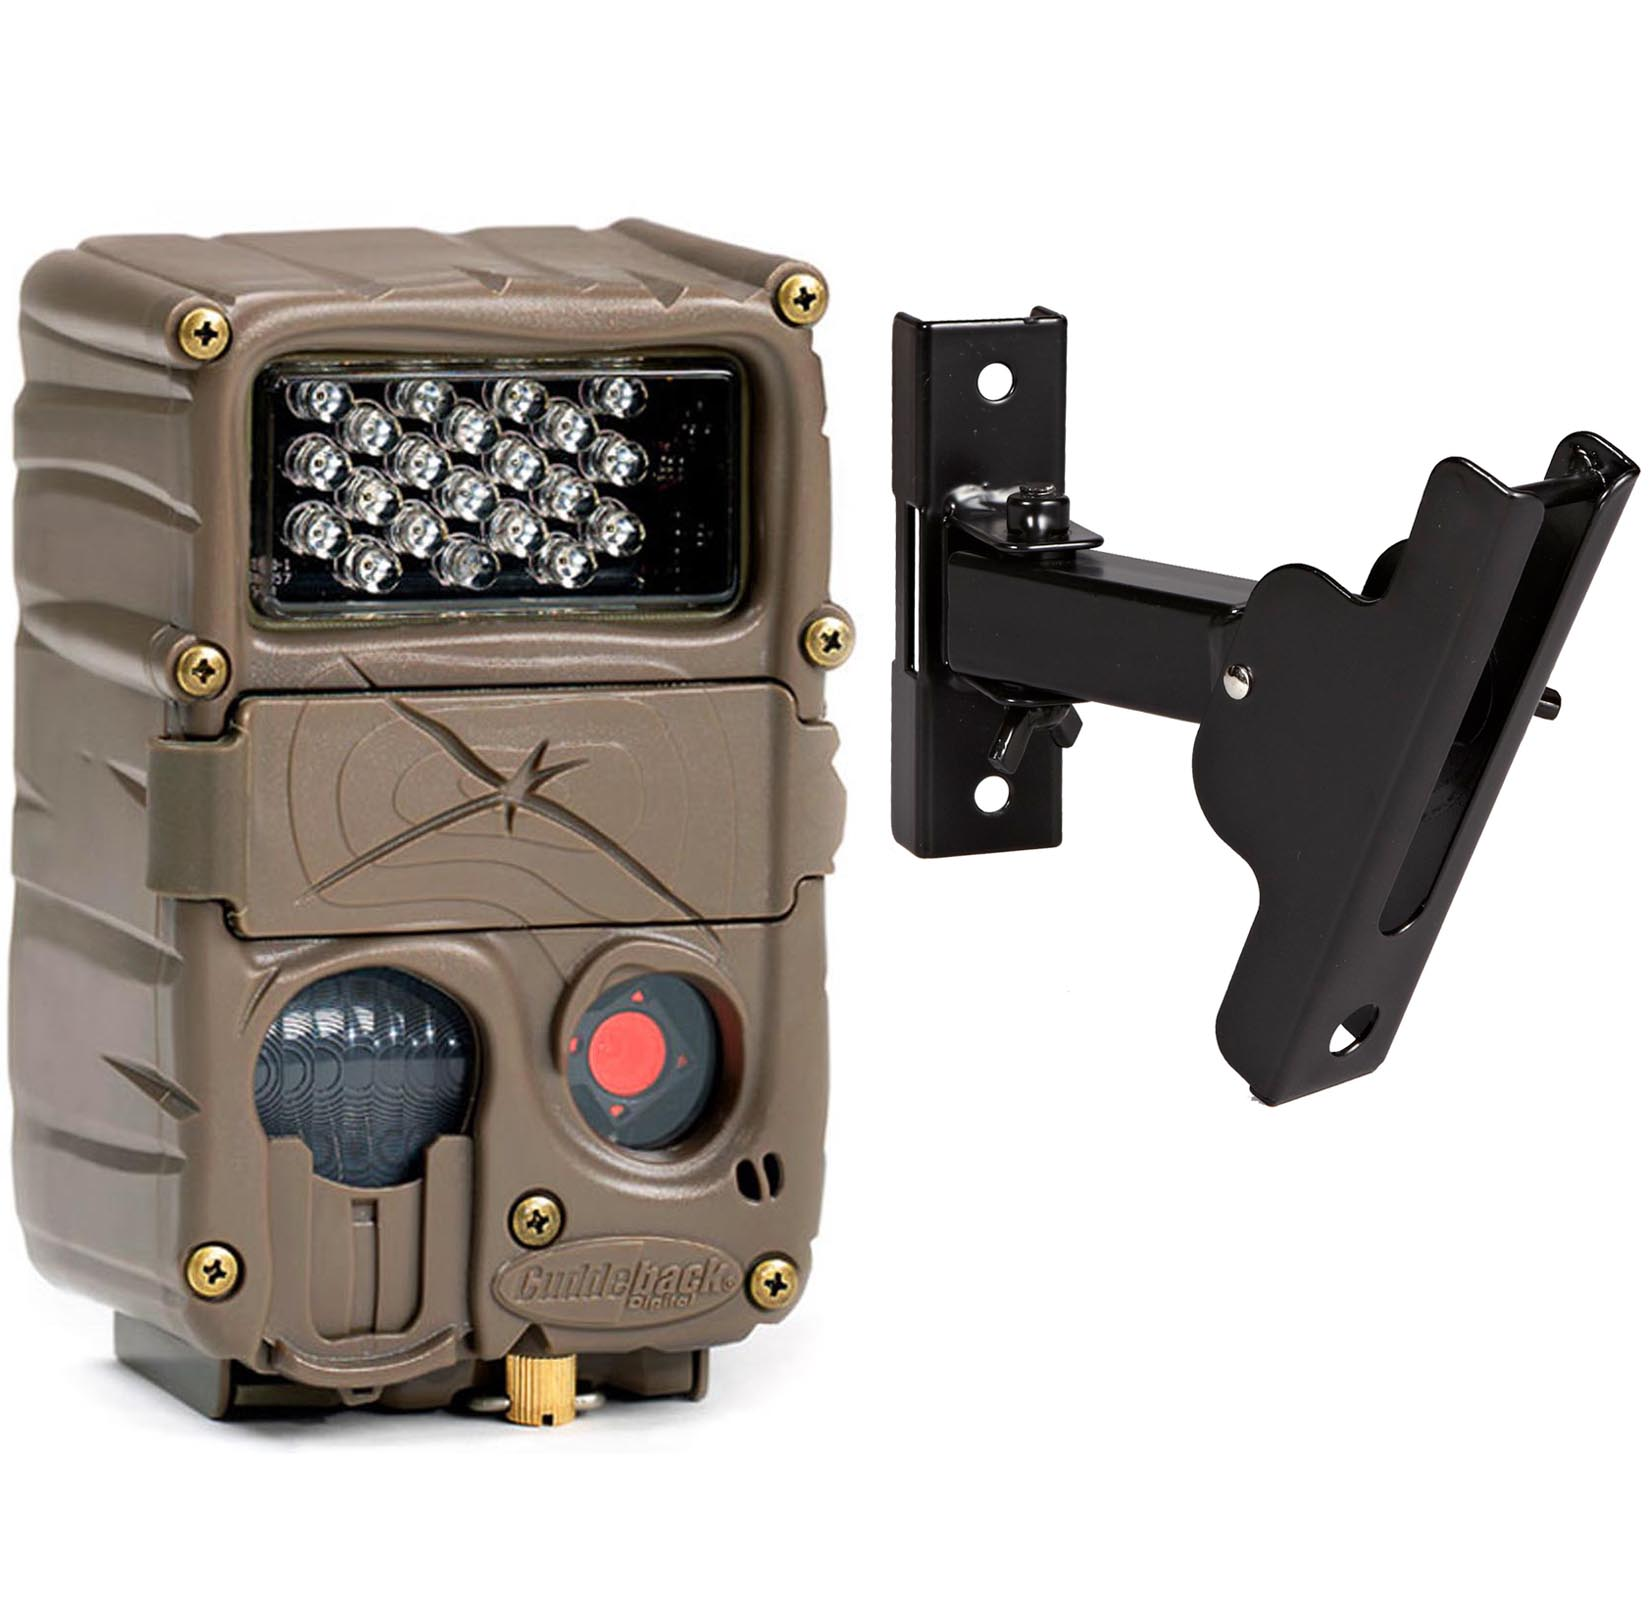 Cuddeback 20MP Model E2 Long Range Micro IR Trail Game Camera + Genius PTL Mount by Cuddeback